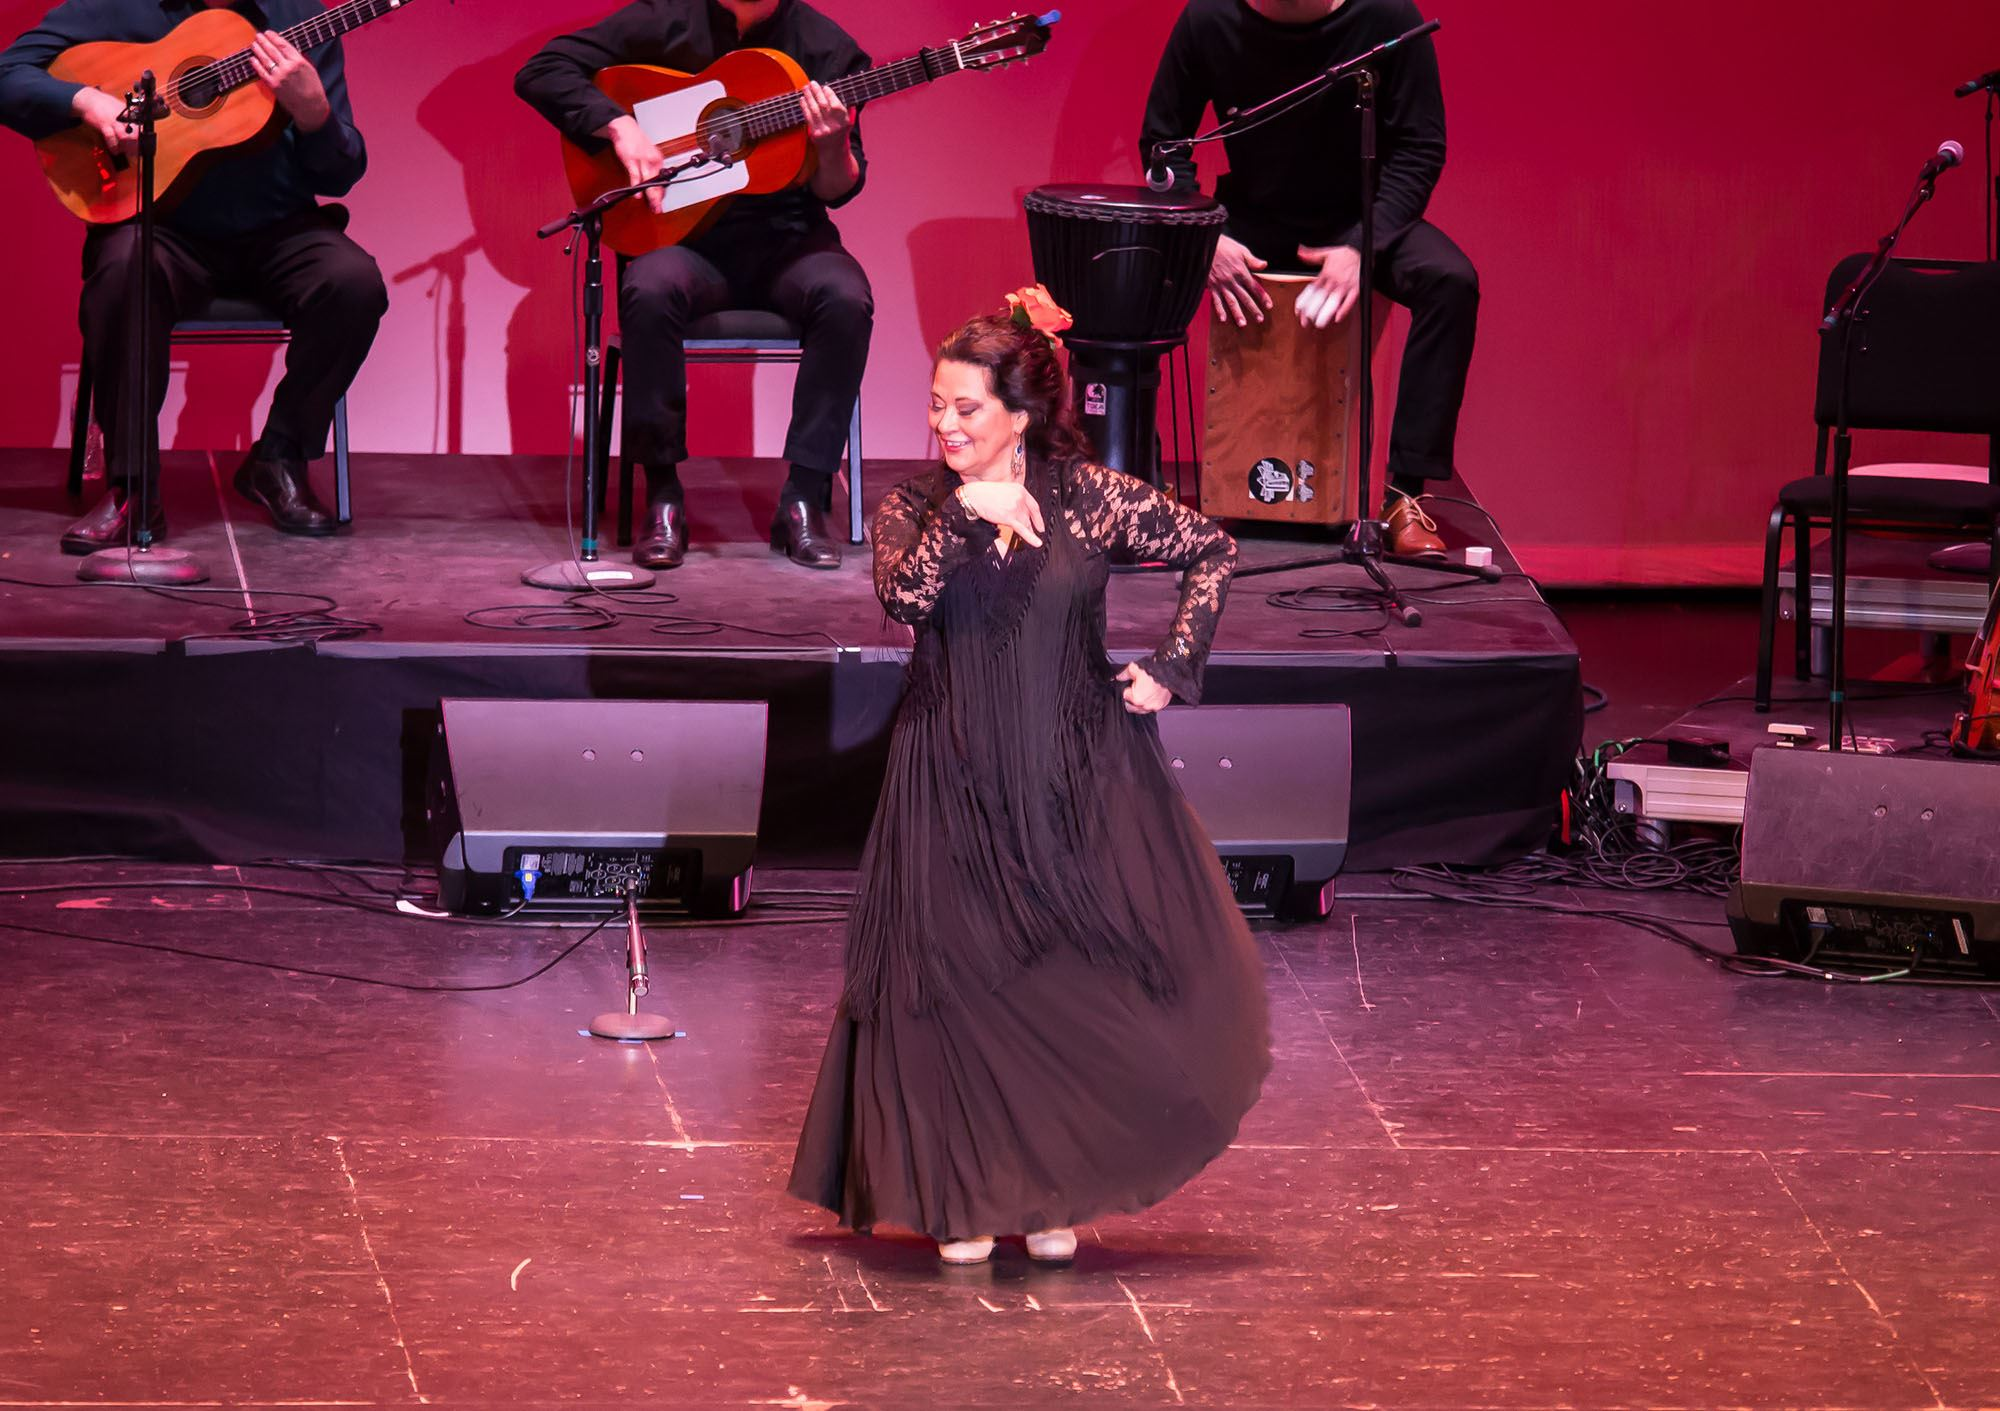 Explore the origins and influence of Flamenco in Jornada